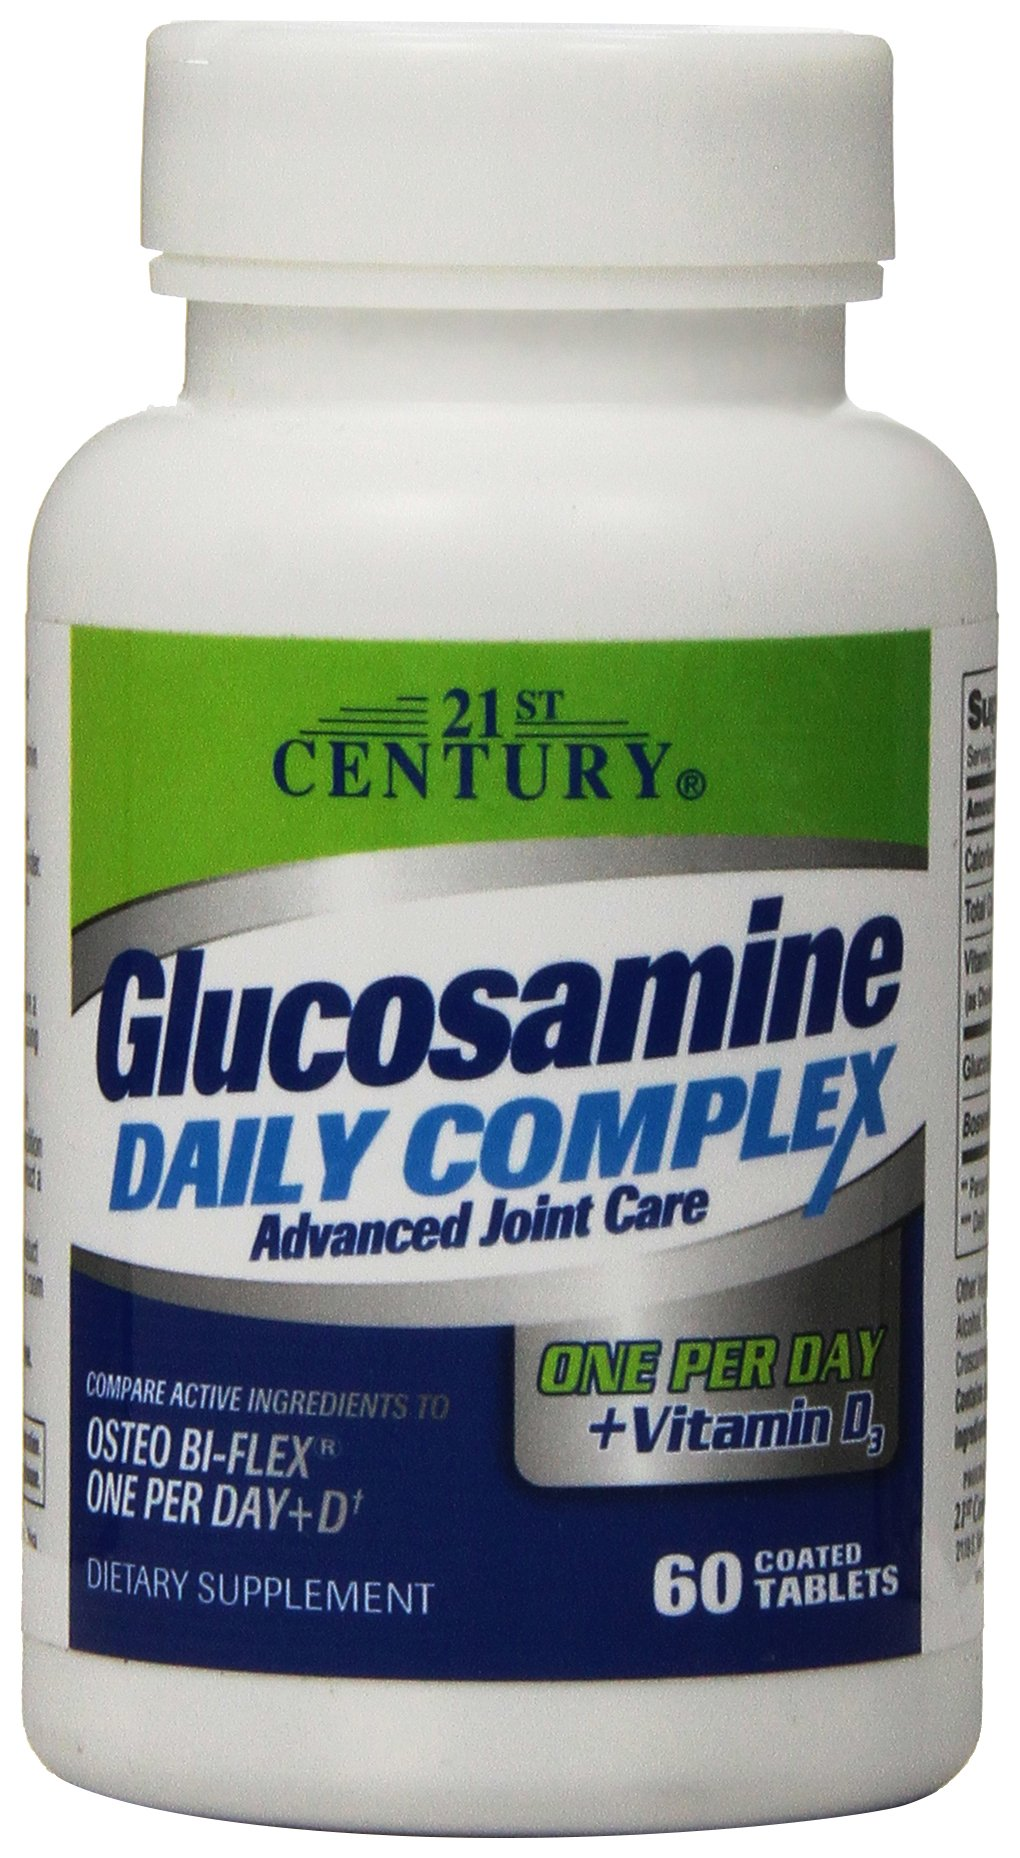 21st Century Glucosamine Daily Complex Plus D Tablets, 60 Count